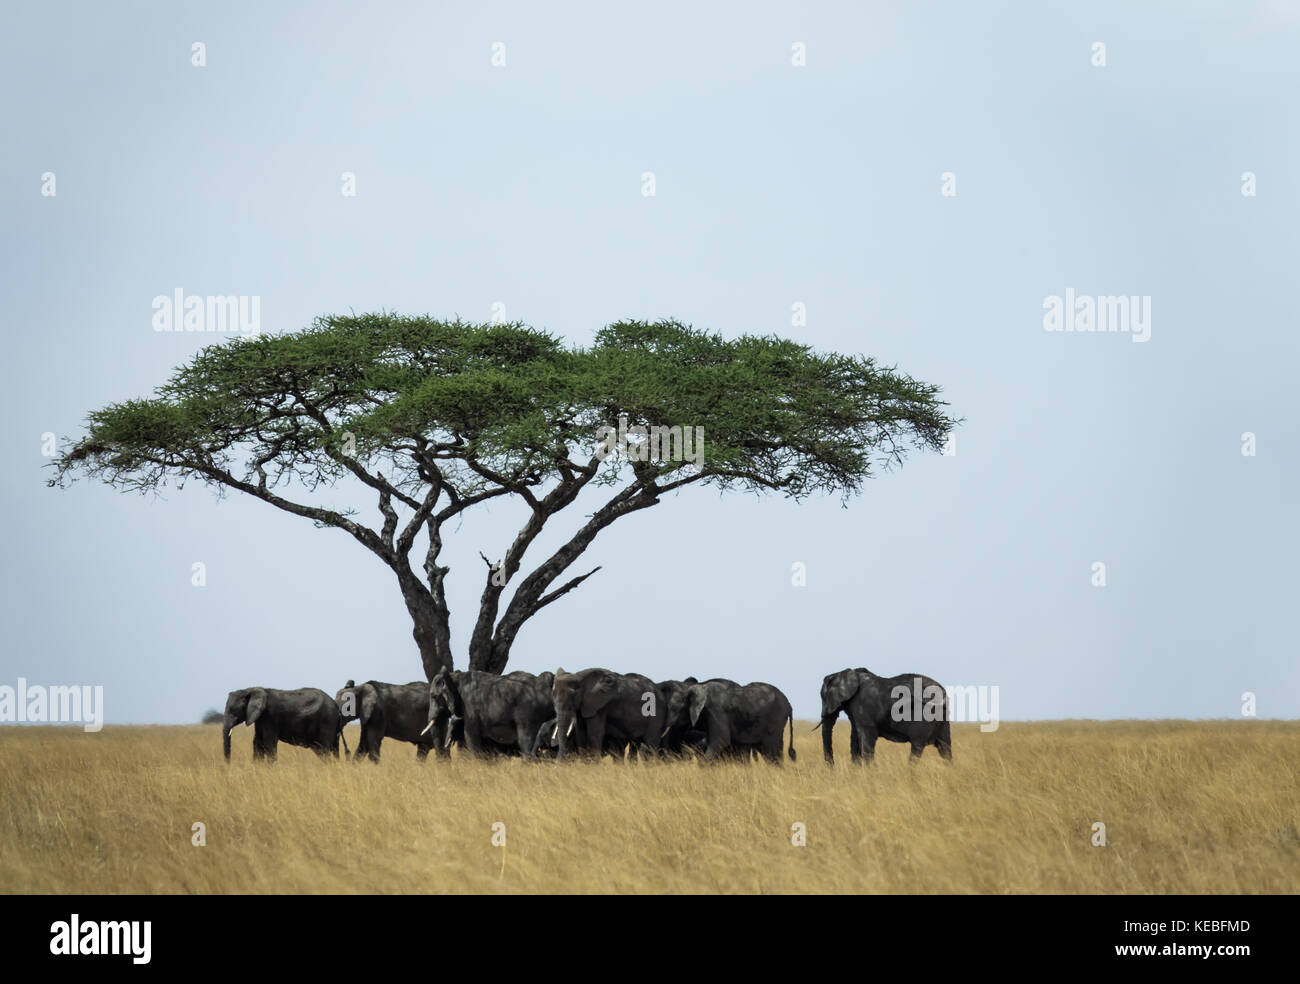 This gathering of elephant clan under an acacia tree occurred in August 2017 during the 'Great Migration', - Stock Image